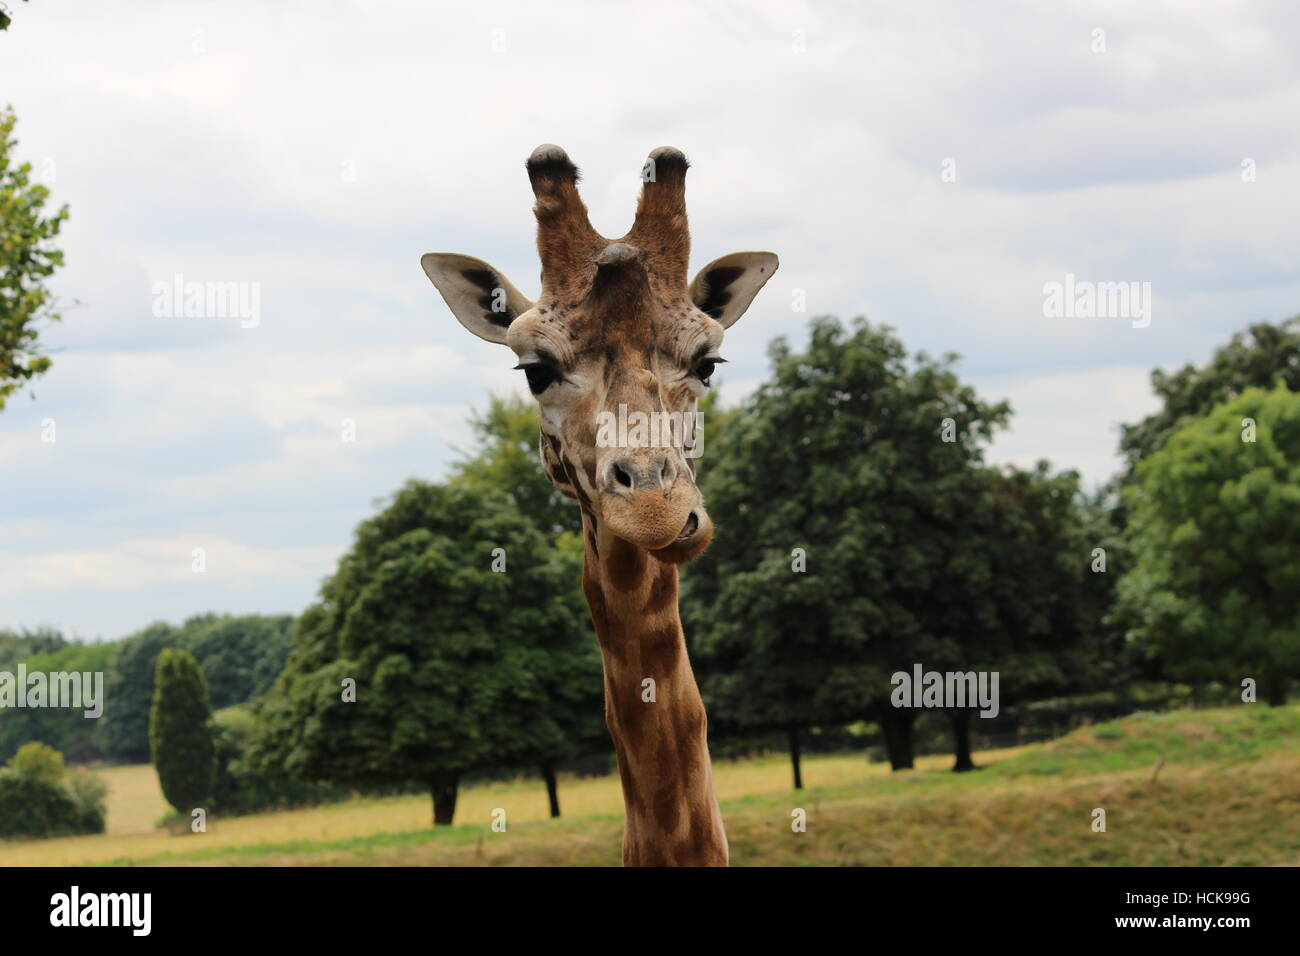 Giraffe portrait Cotswold Wildlife Park young adolescent proud headshot head talking - Stock Image